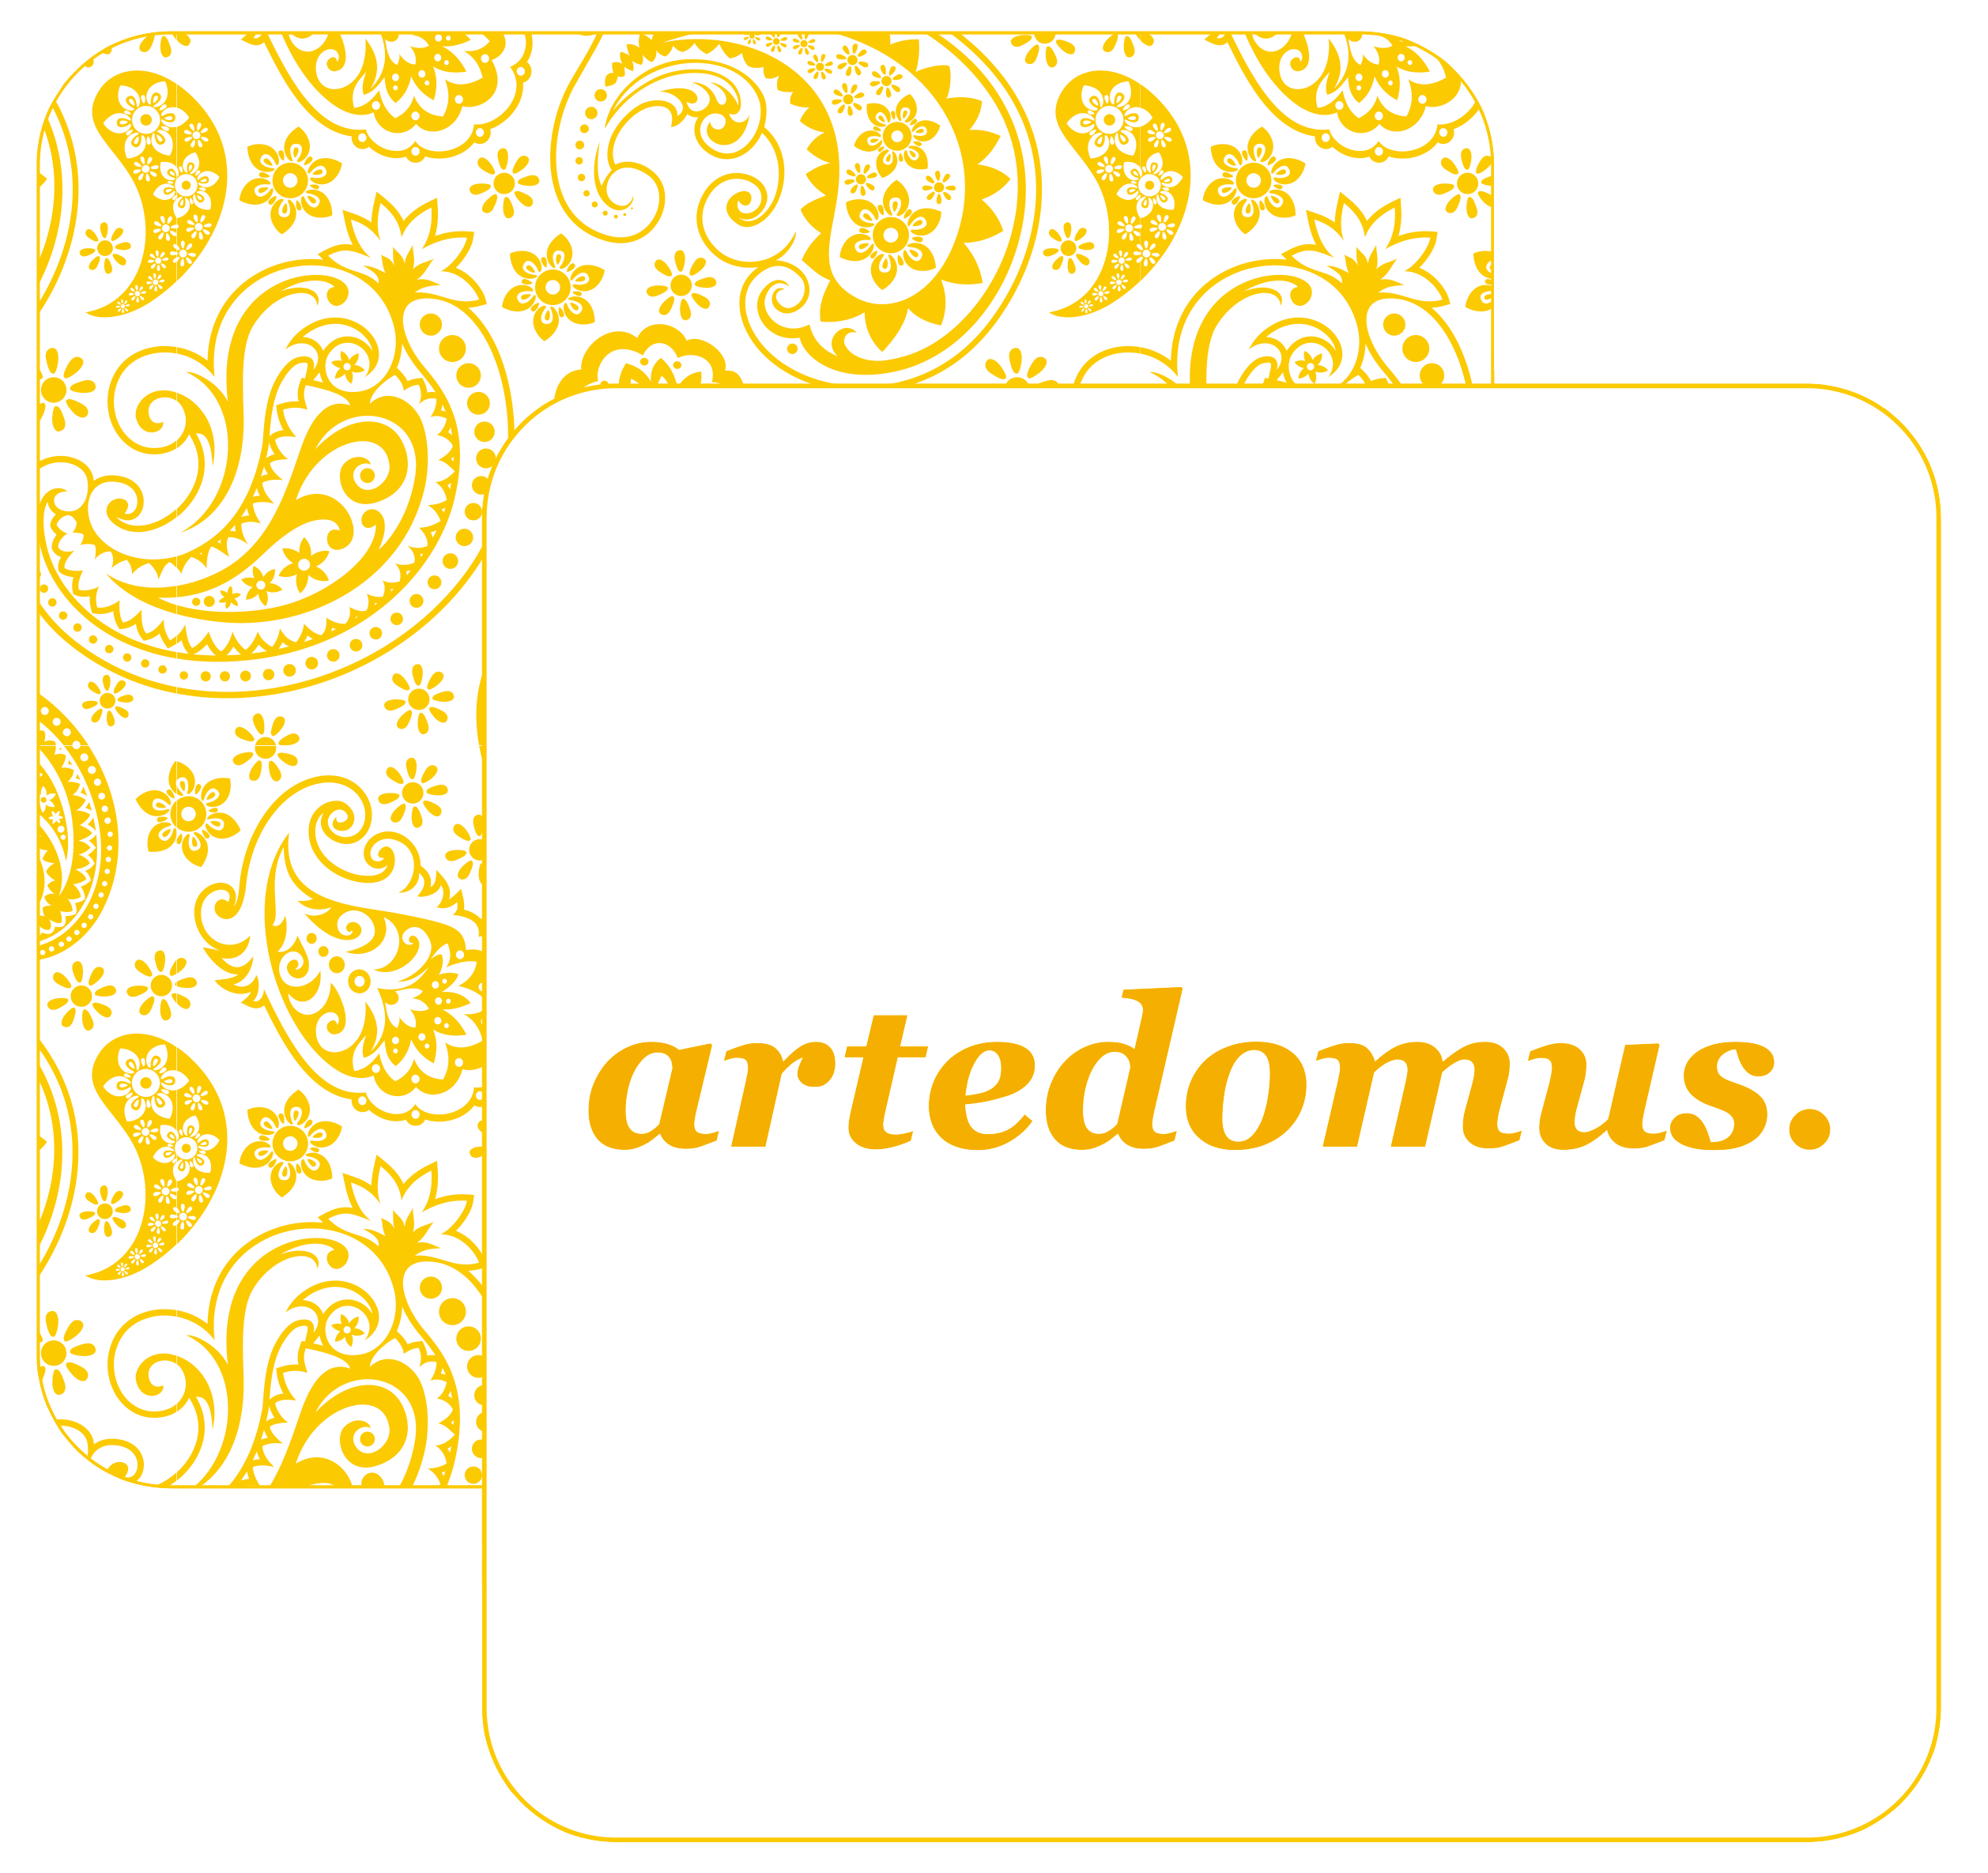 artedomus. interior design